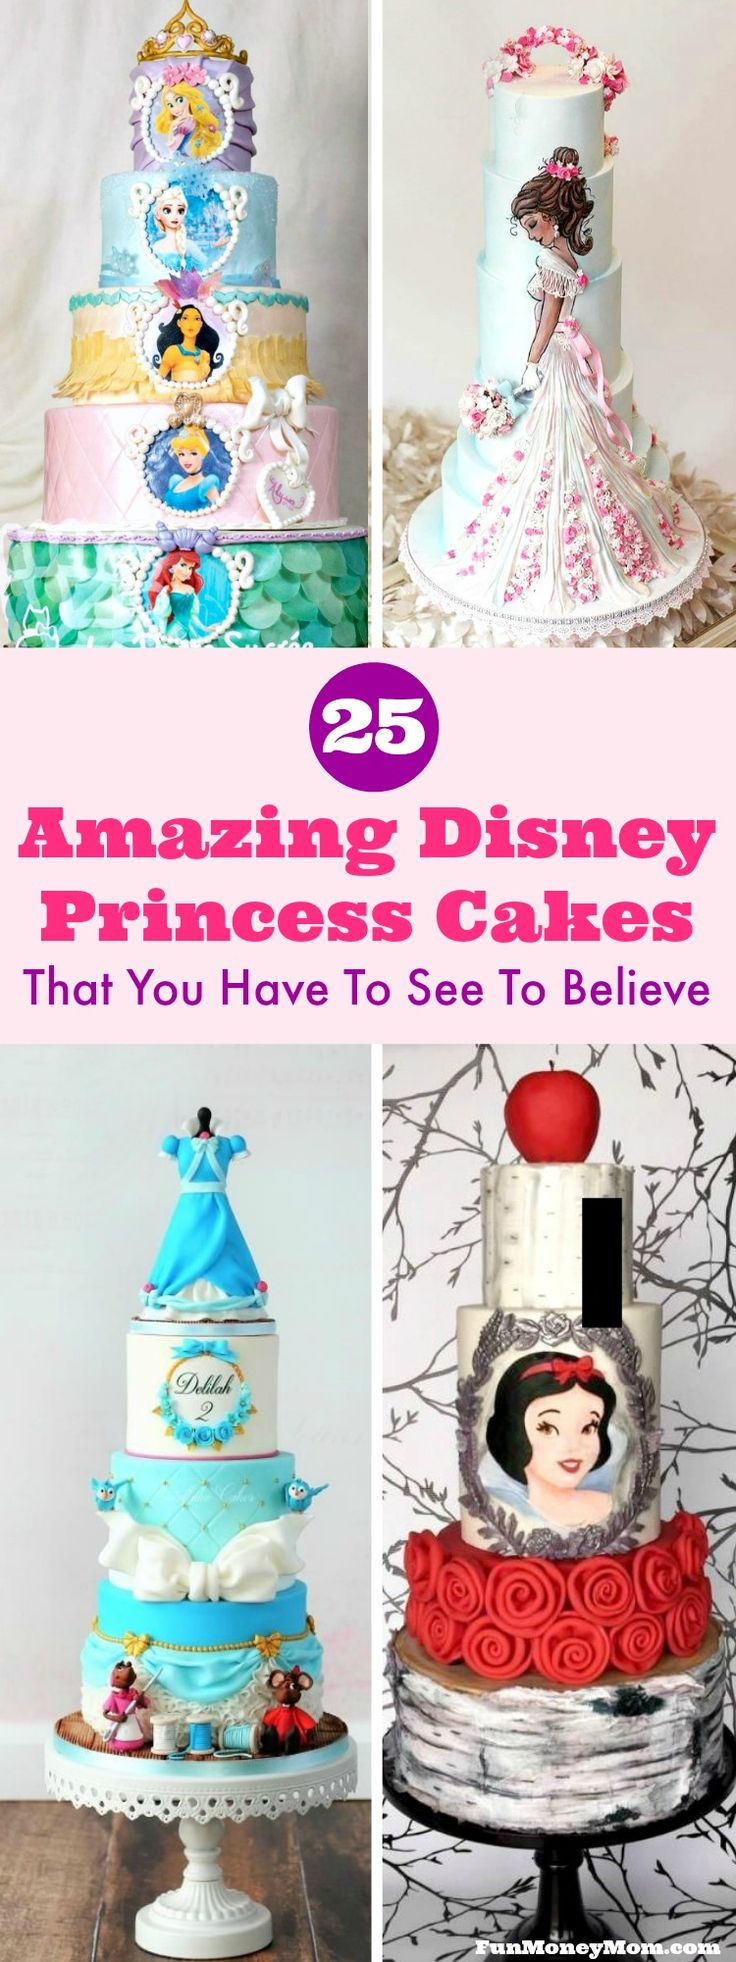 Disney Princess Cakes - Throwing a princess party for your little one? You're going to need a birthday cake and these amazing Disney princess cakes are sure to inspire you!